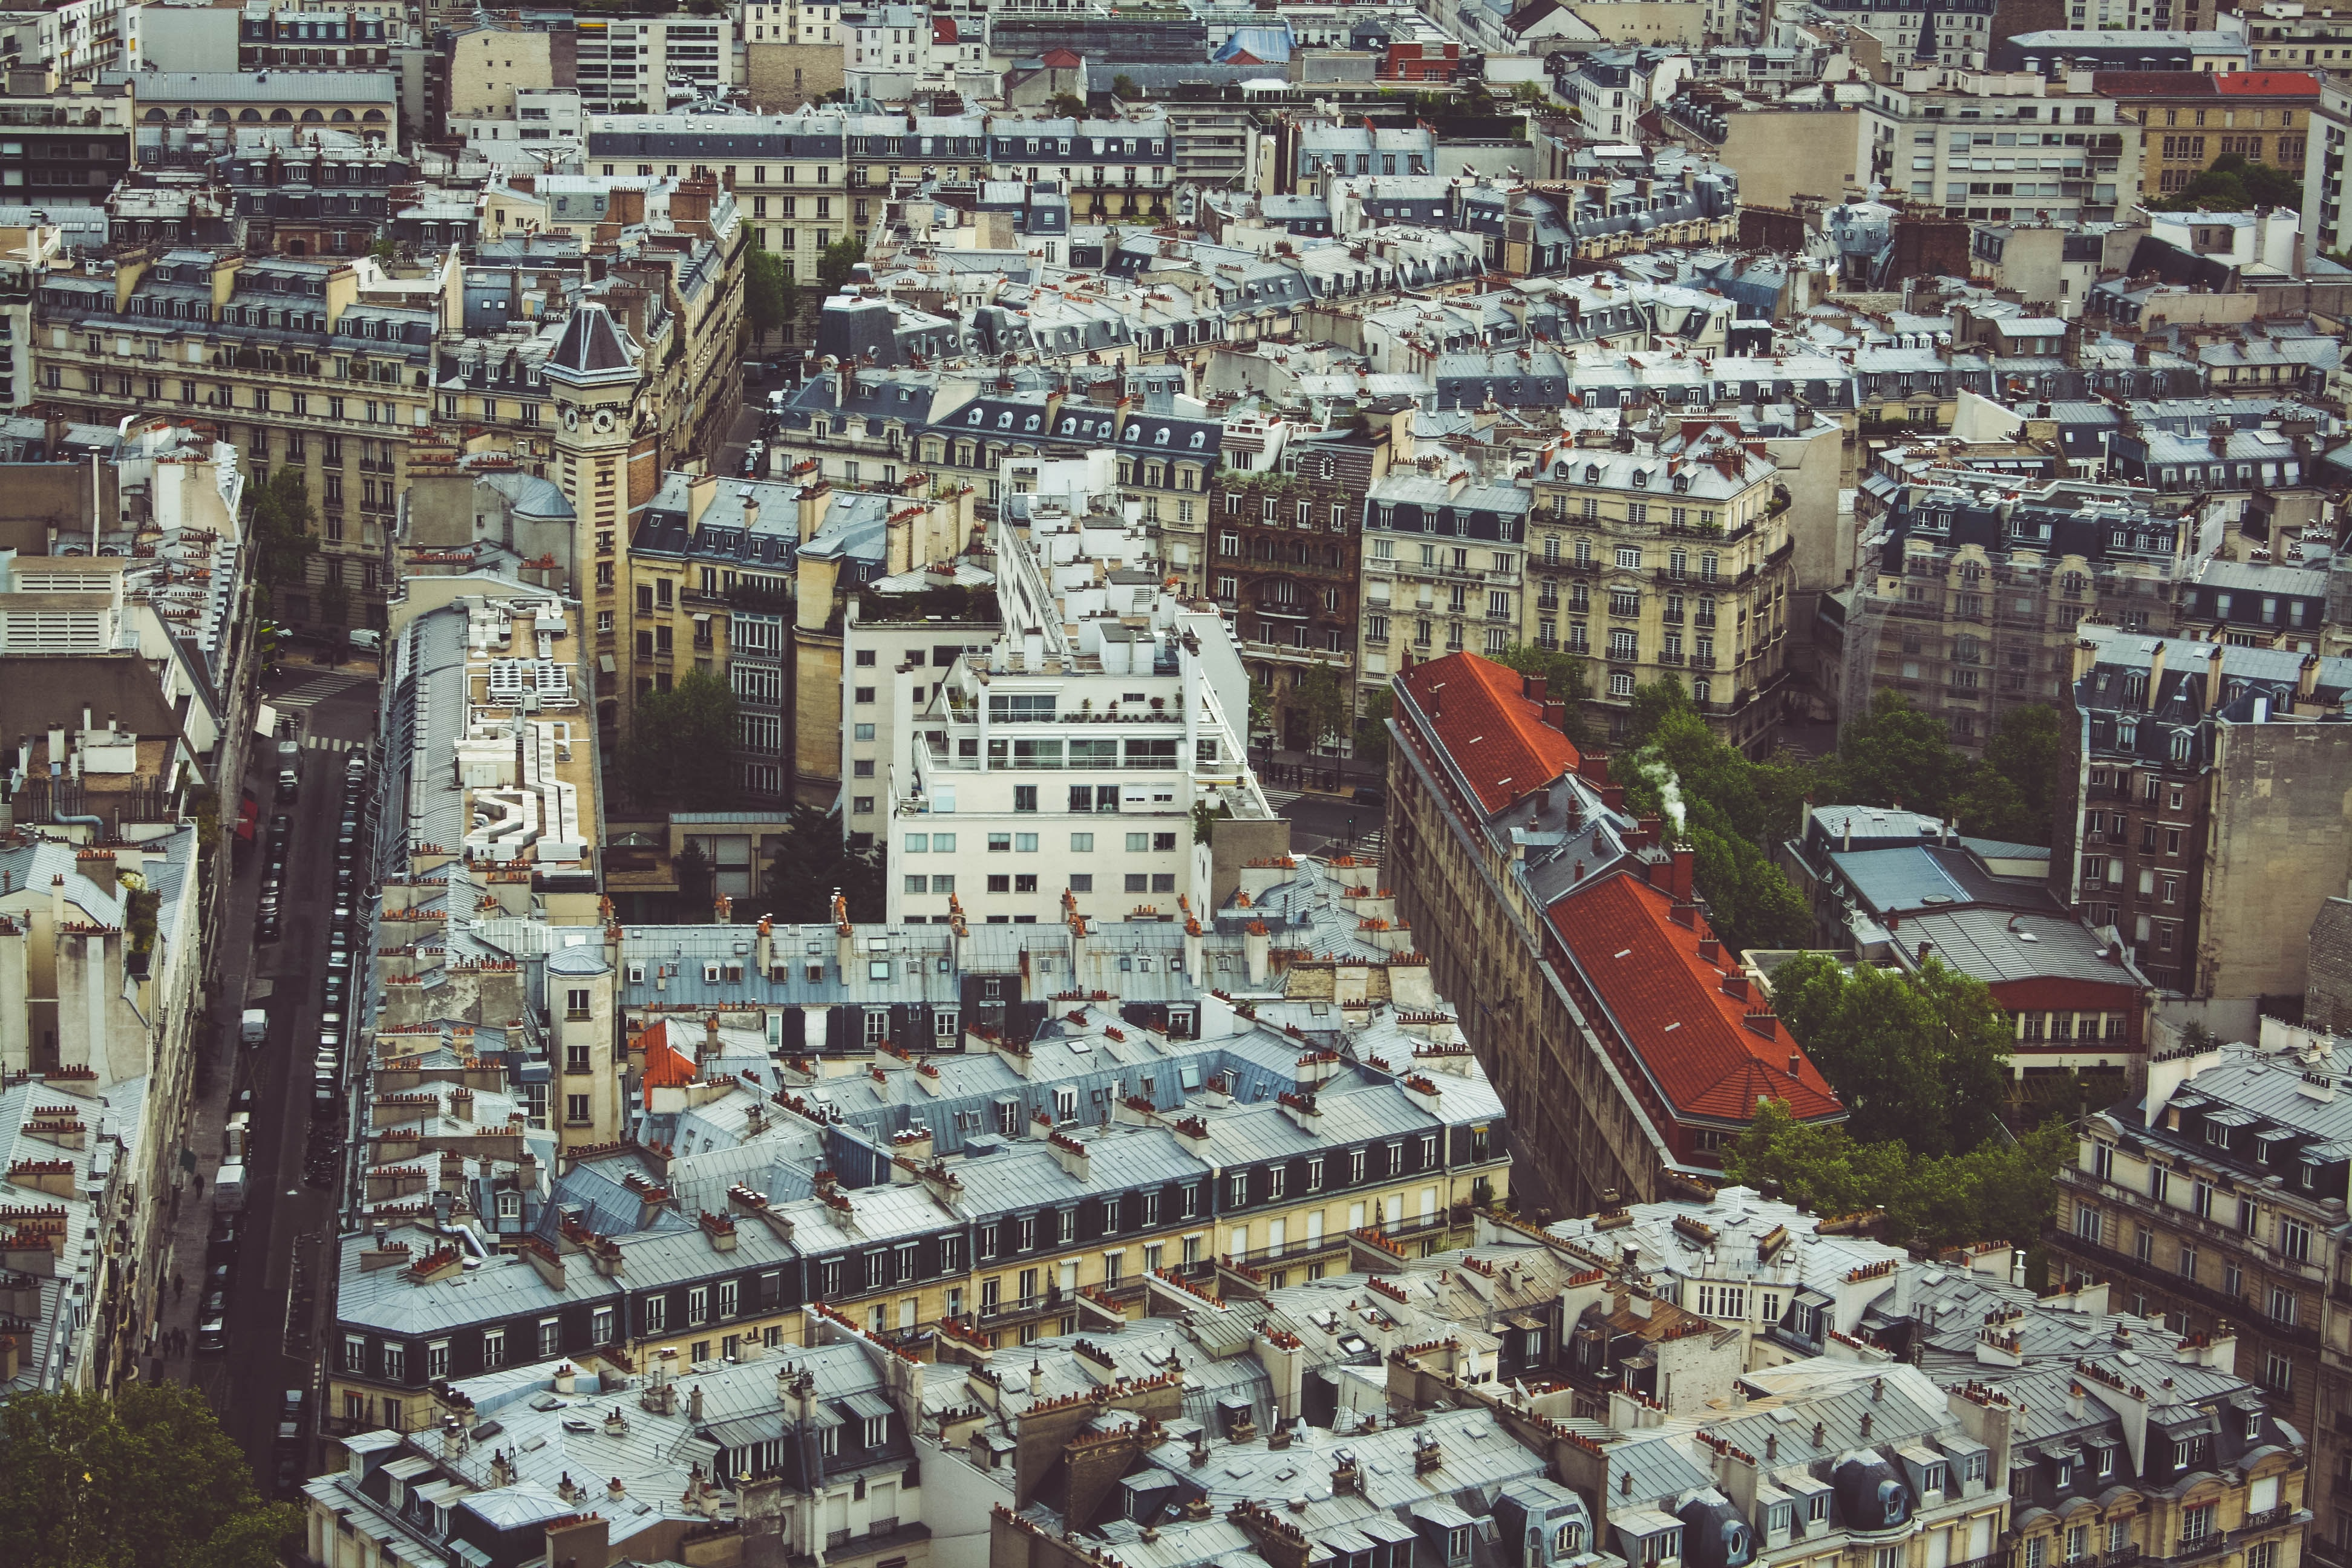 A high shot of busy Paris streets and buildings